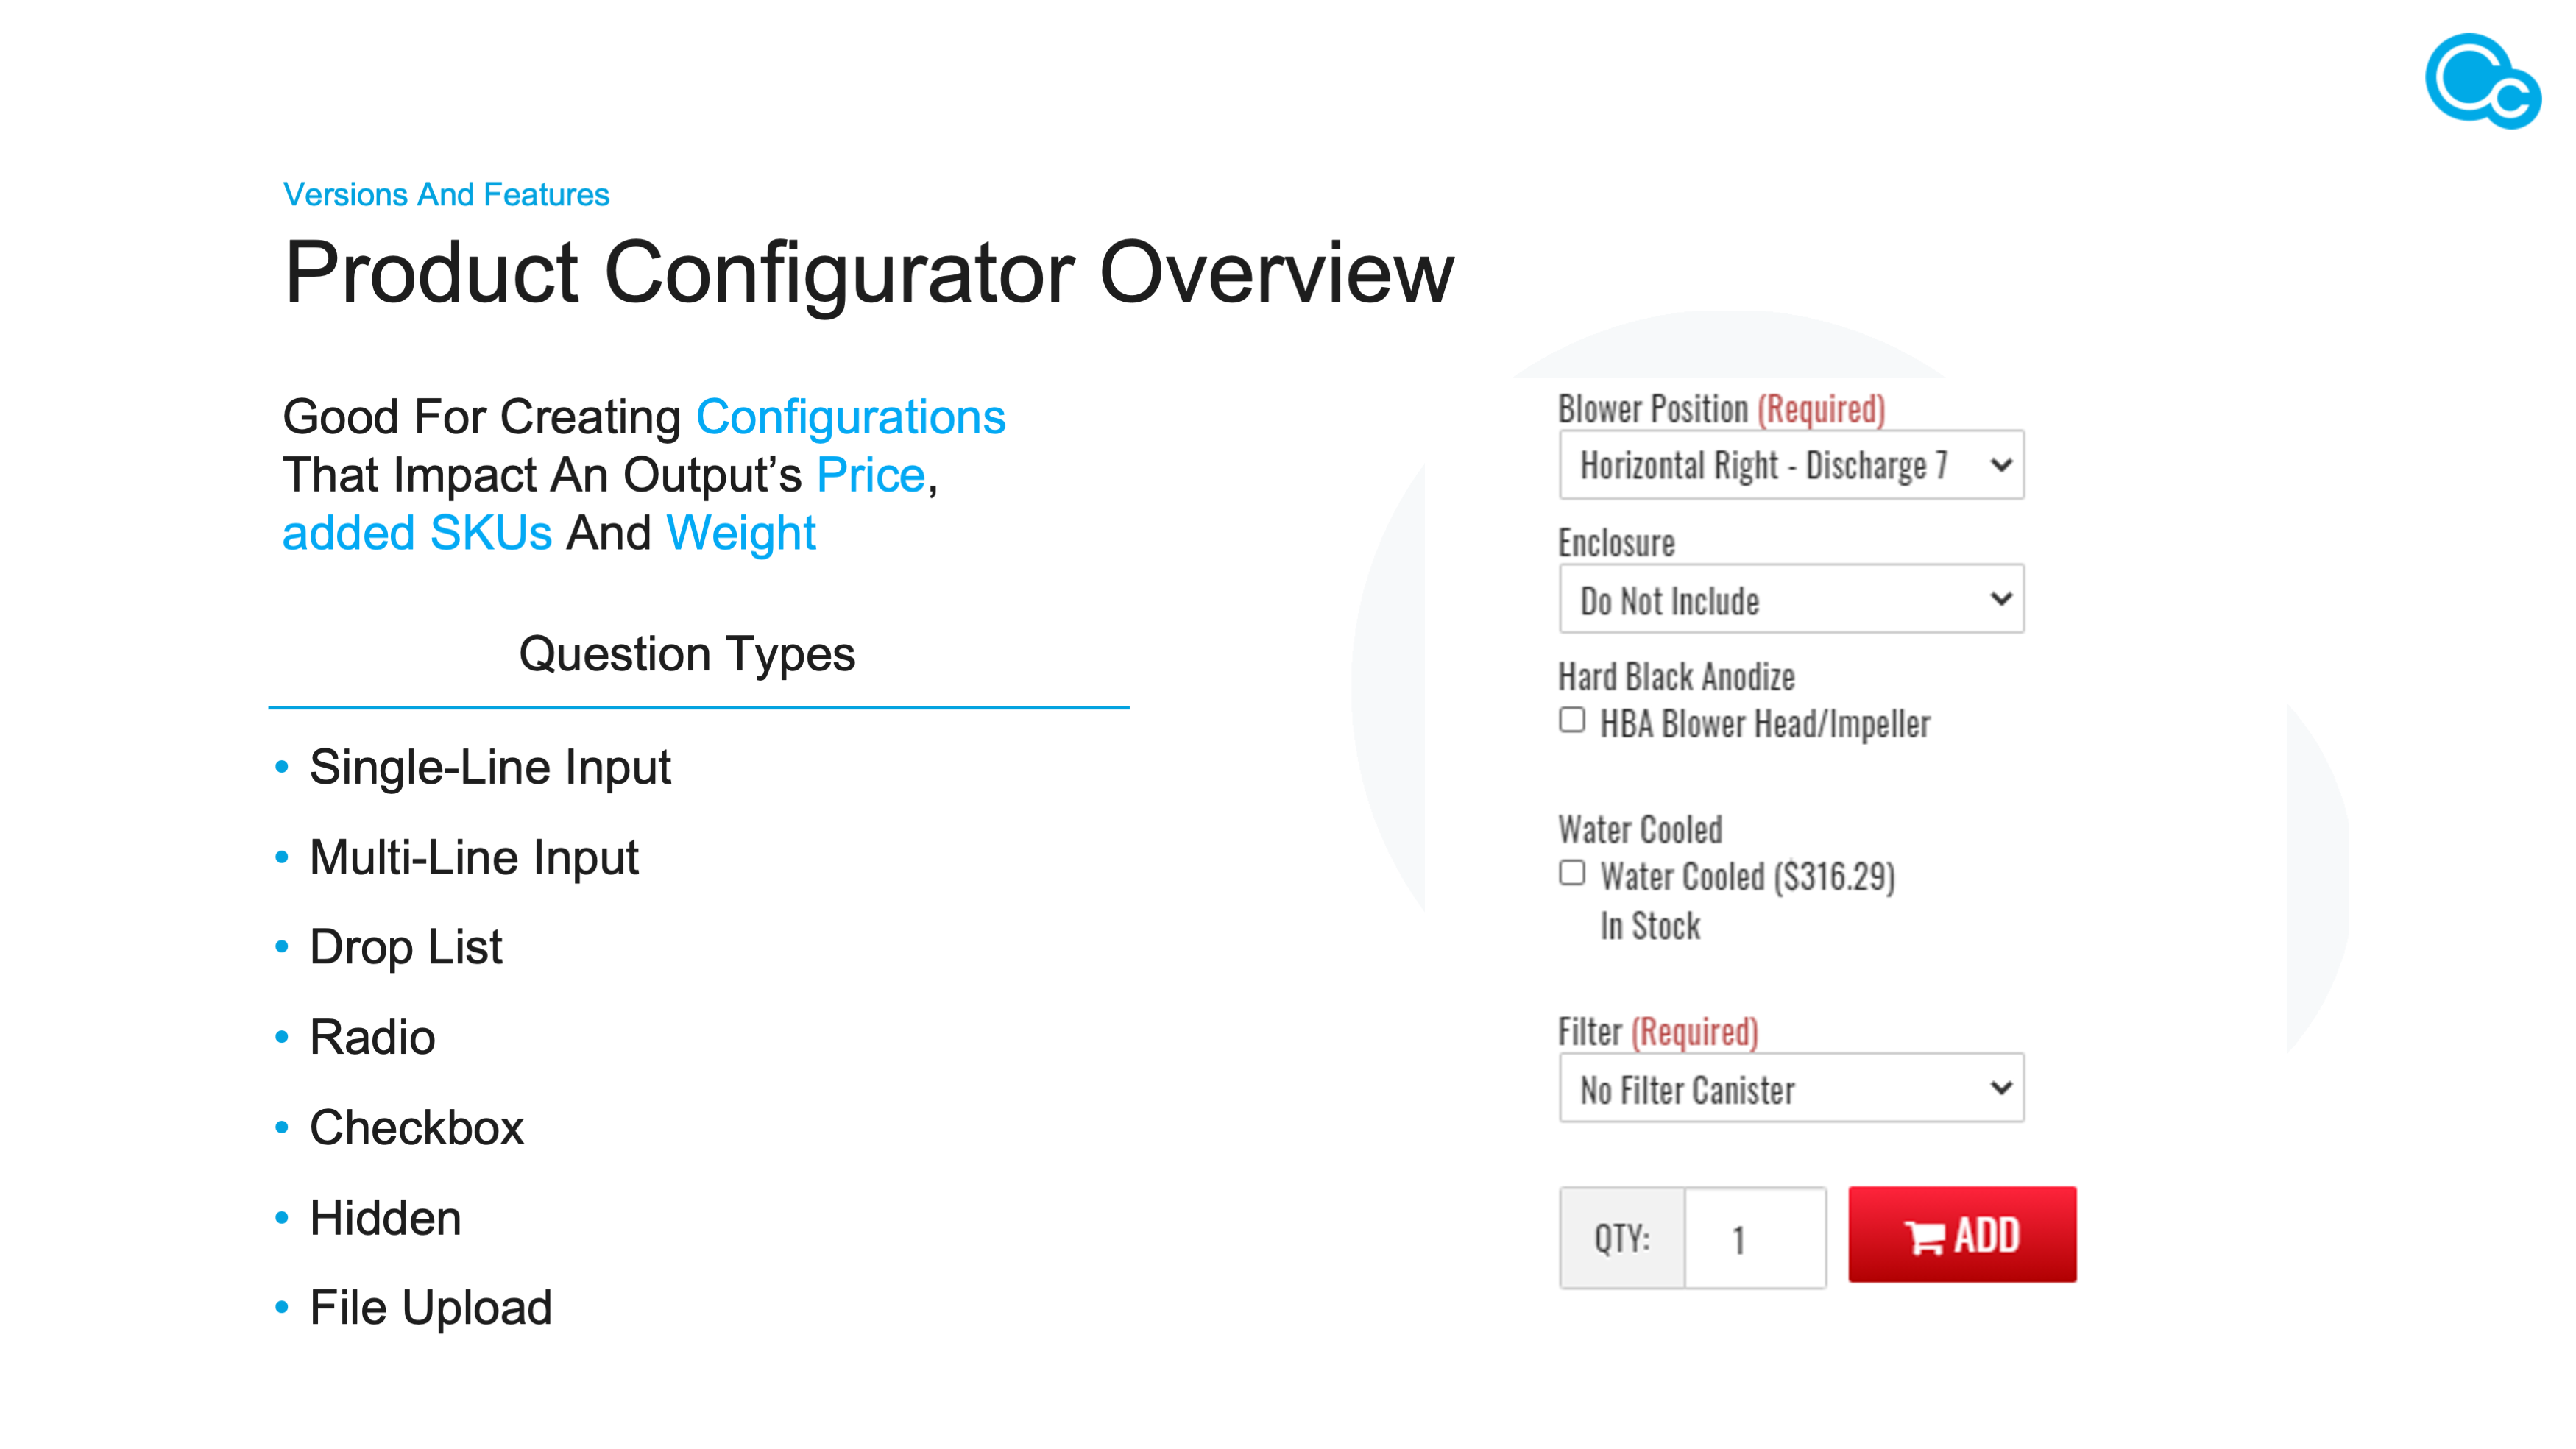 Webinar 2021 03 23 - Managing Product Variability With CIMclouds Product Configurator